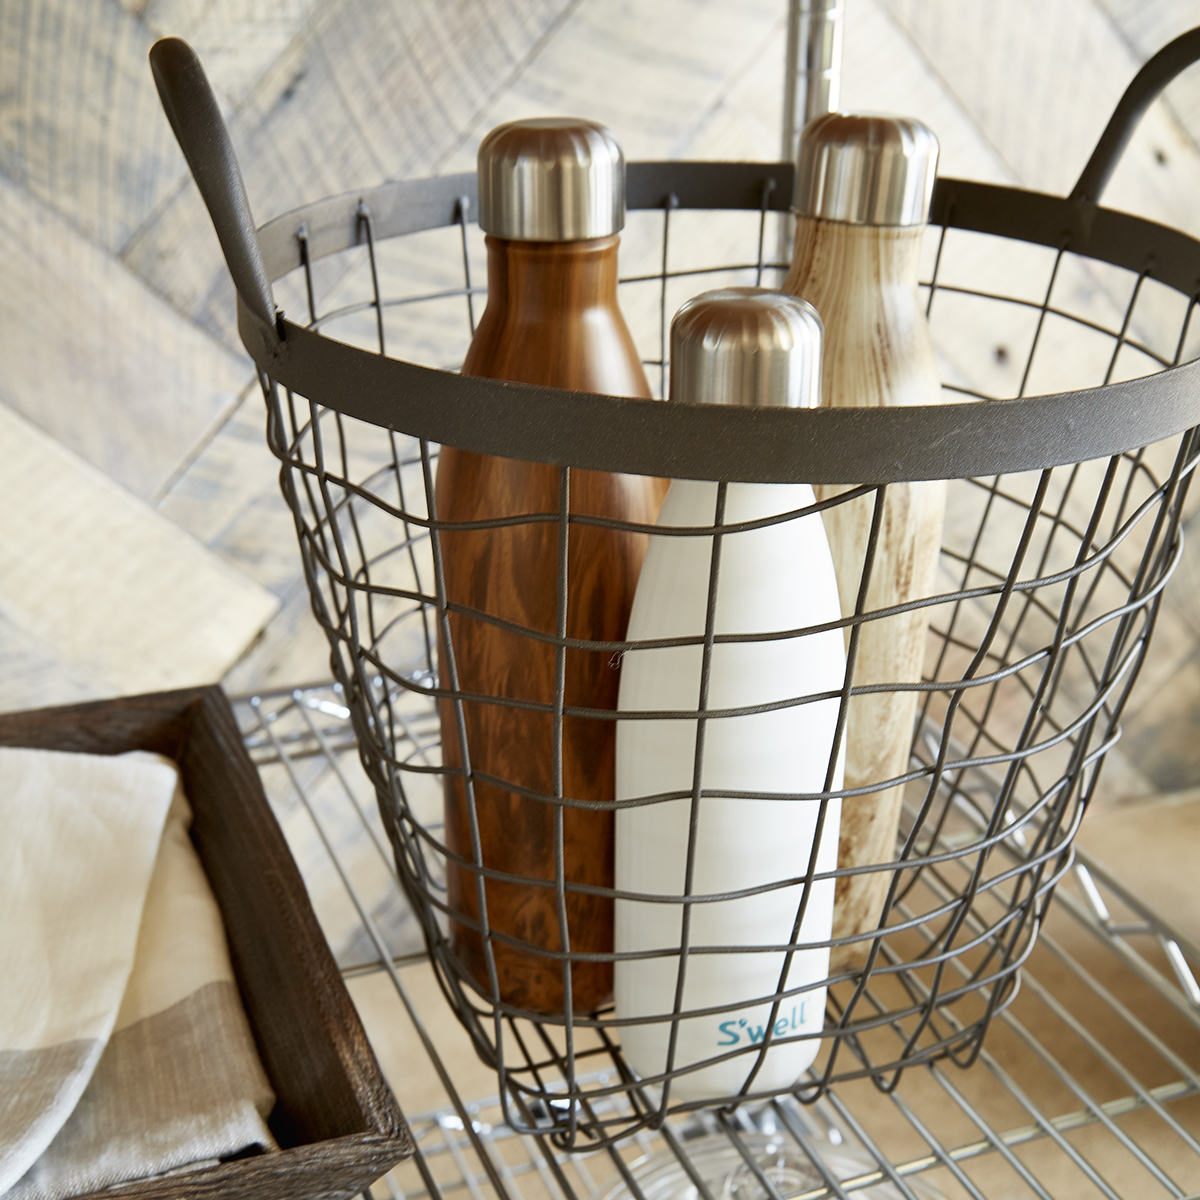 Delicieux Rustic Decorative Storage Baskets With Handles